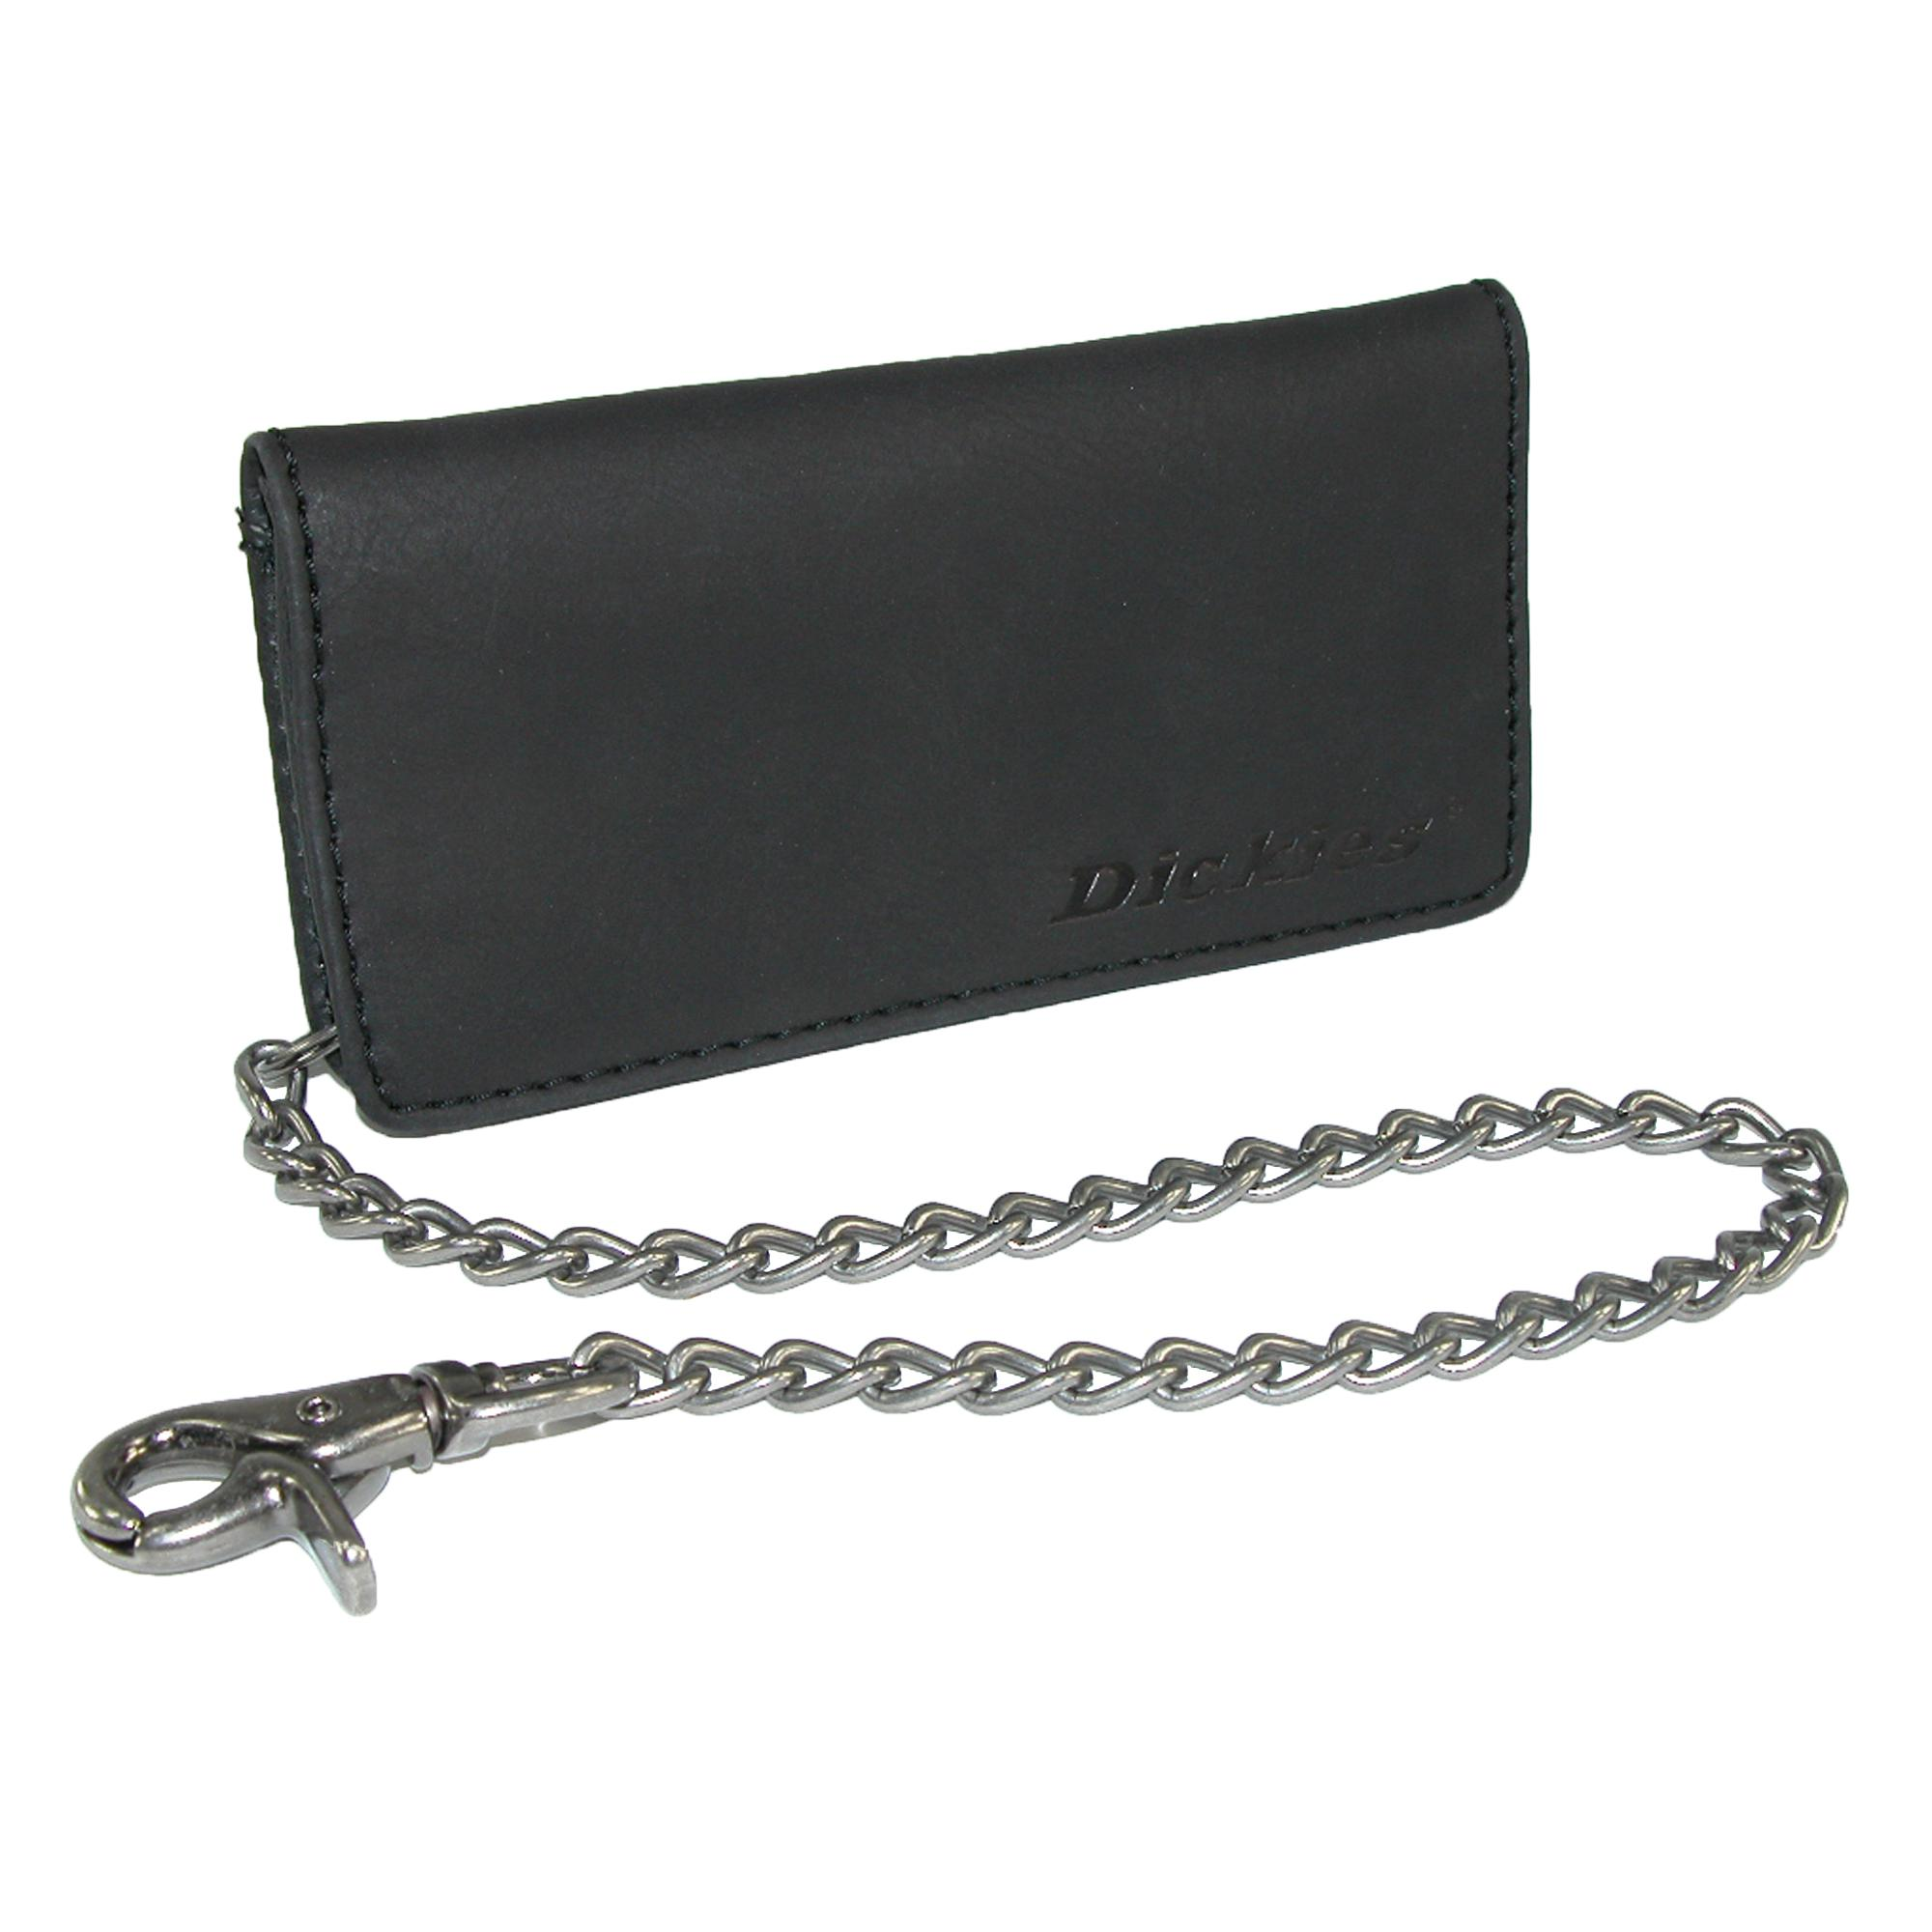 f70fd05e8cb1 Mens Trucker Wallet With Chain. Dickies Mens Leather Trucker Chain Wallet |  eBay